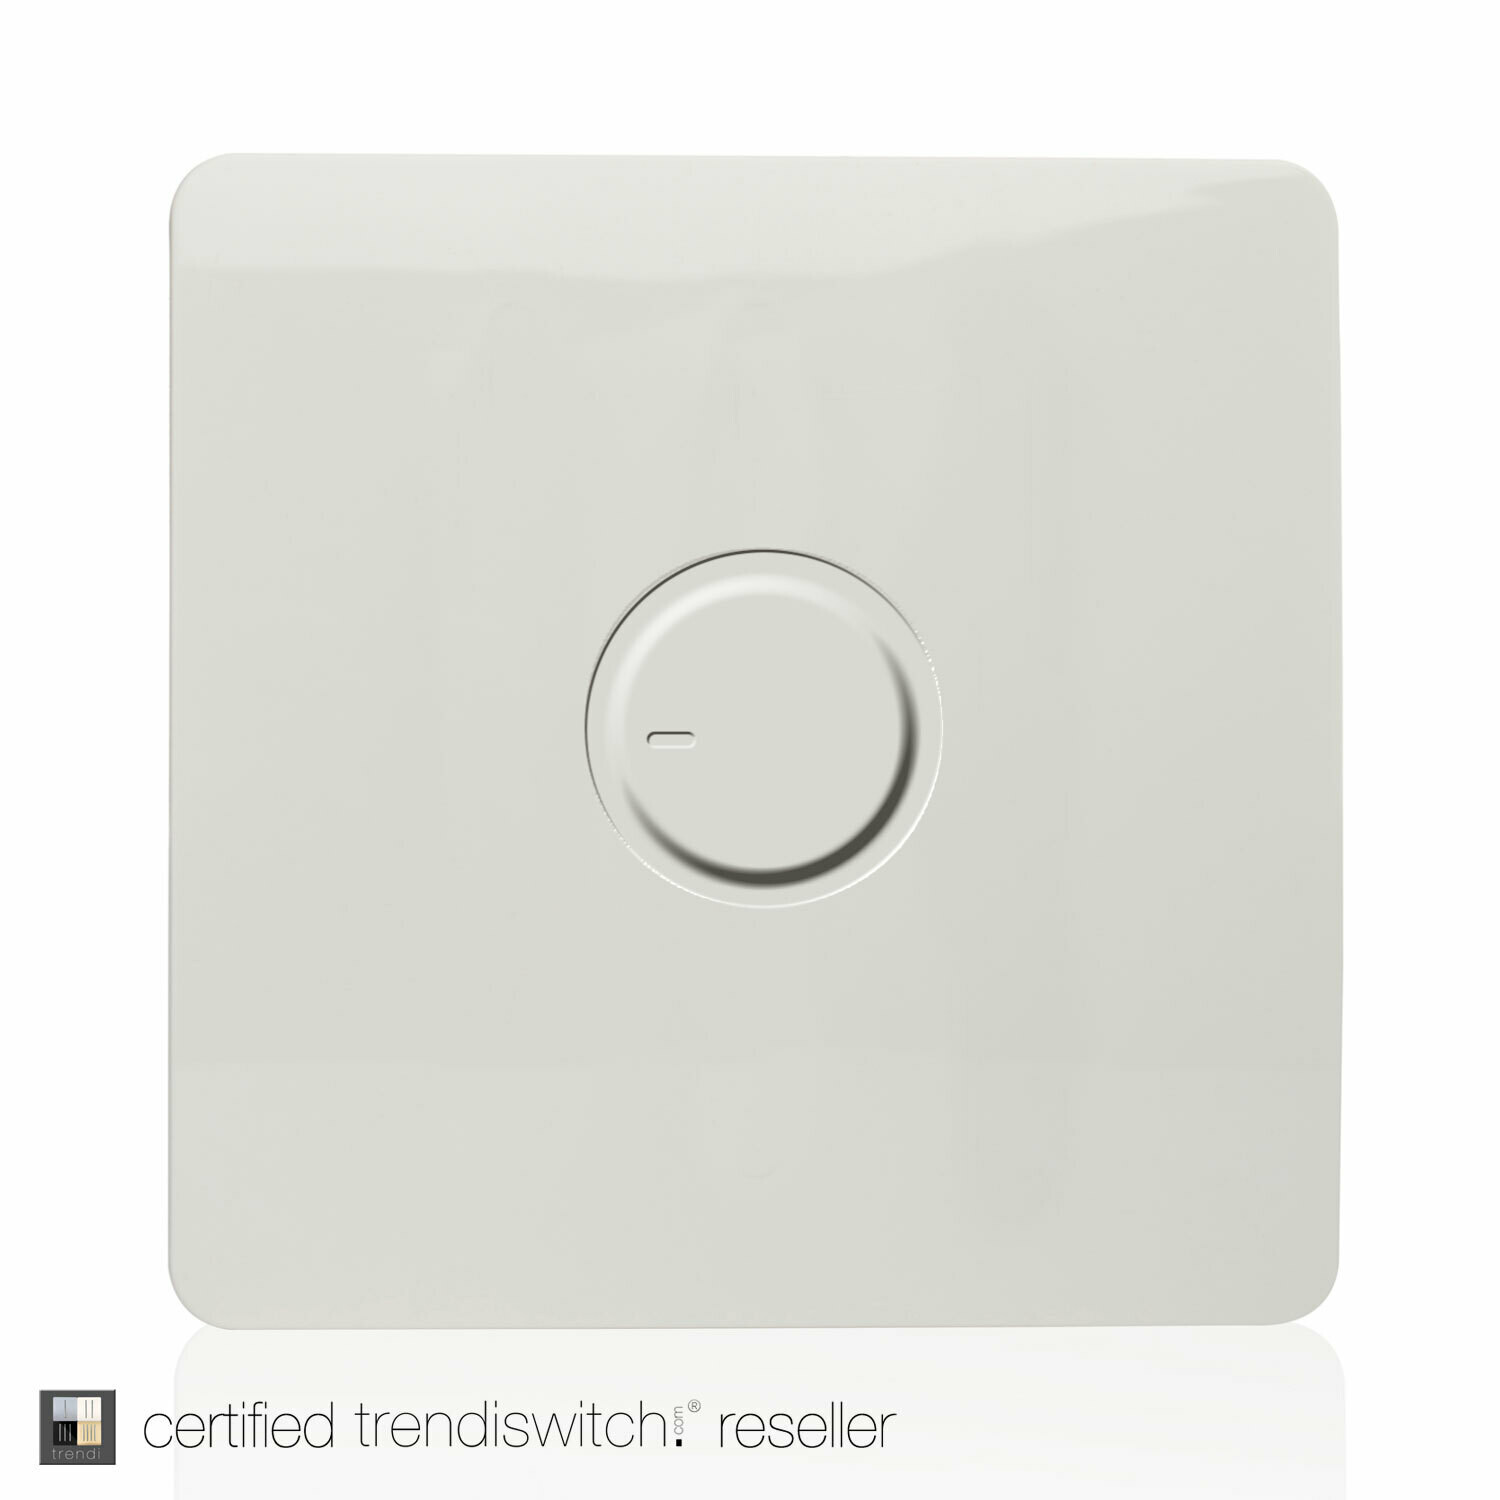 Trendi, Artistic Modern 1 Gang Fan Speed Controller Gloss White Finish, BRITISH MADE, 5yrs warranty